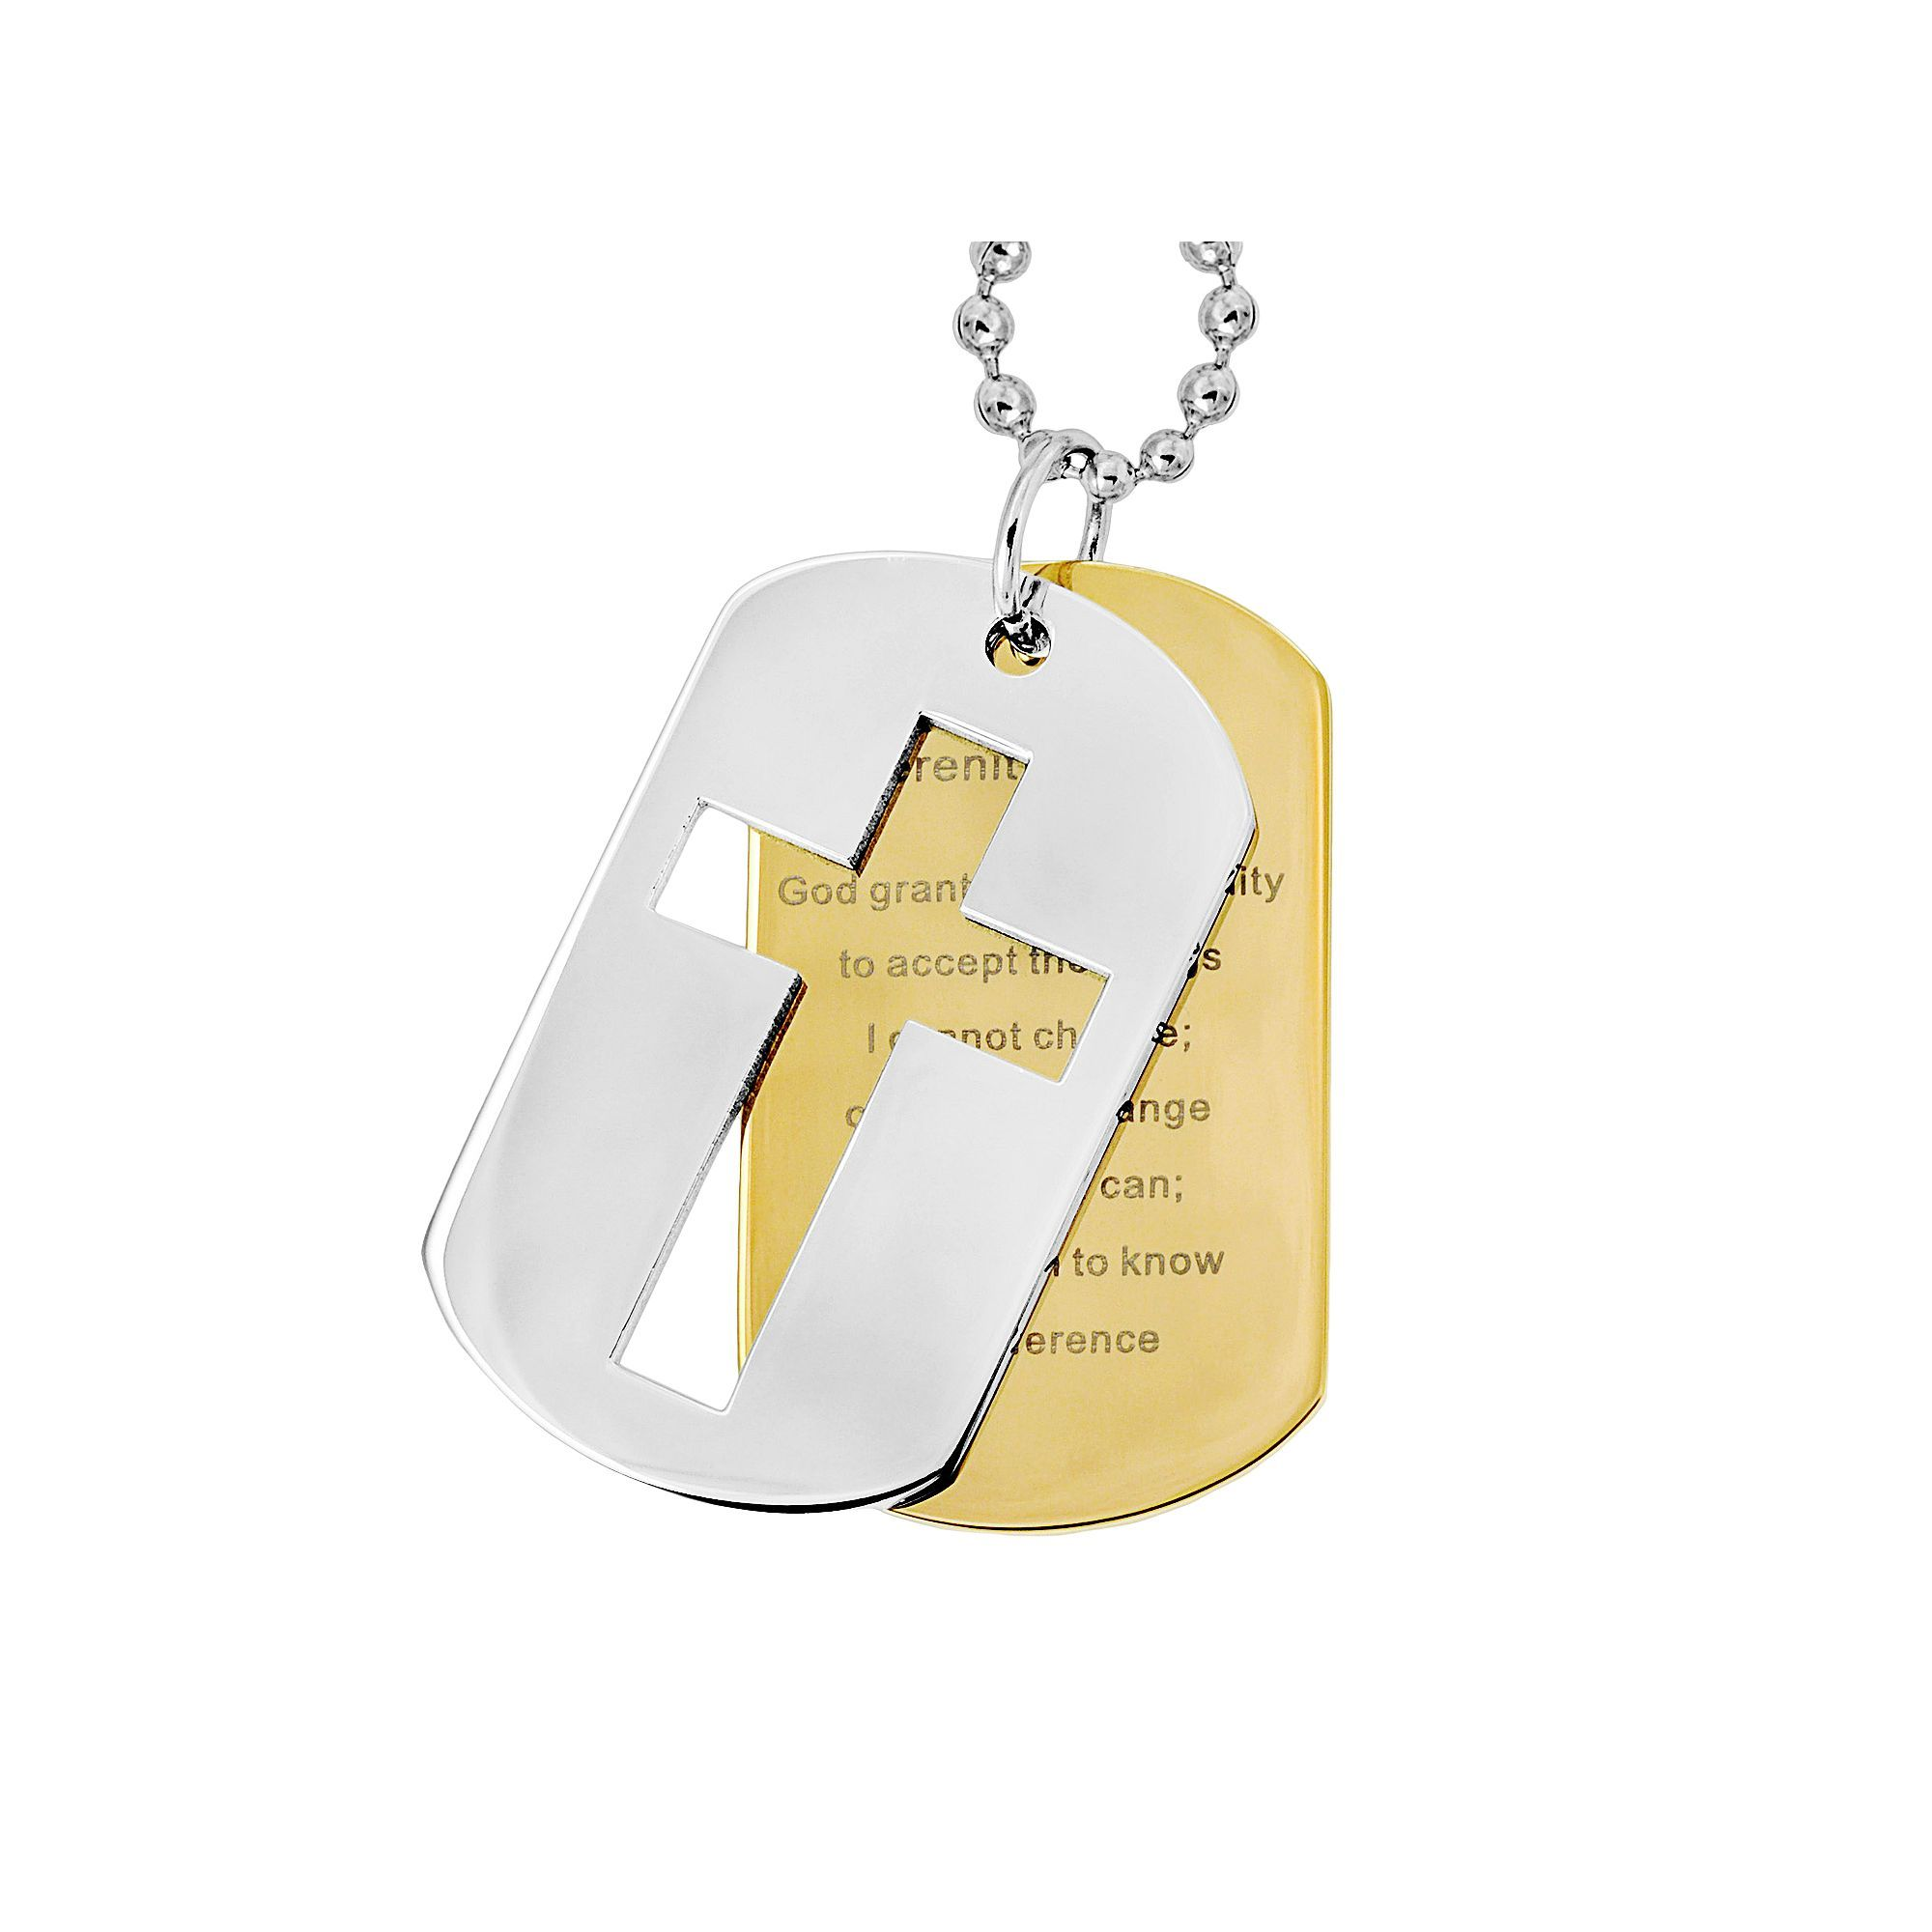 inflowcomponent dog mens serenity bible technicalissues s molike verse tag steel p jewelry content res and prayer pendant stainless cross global necklace inflow